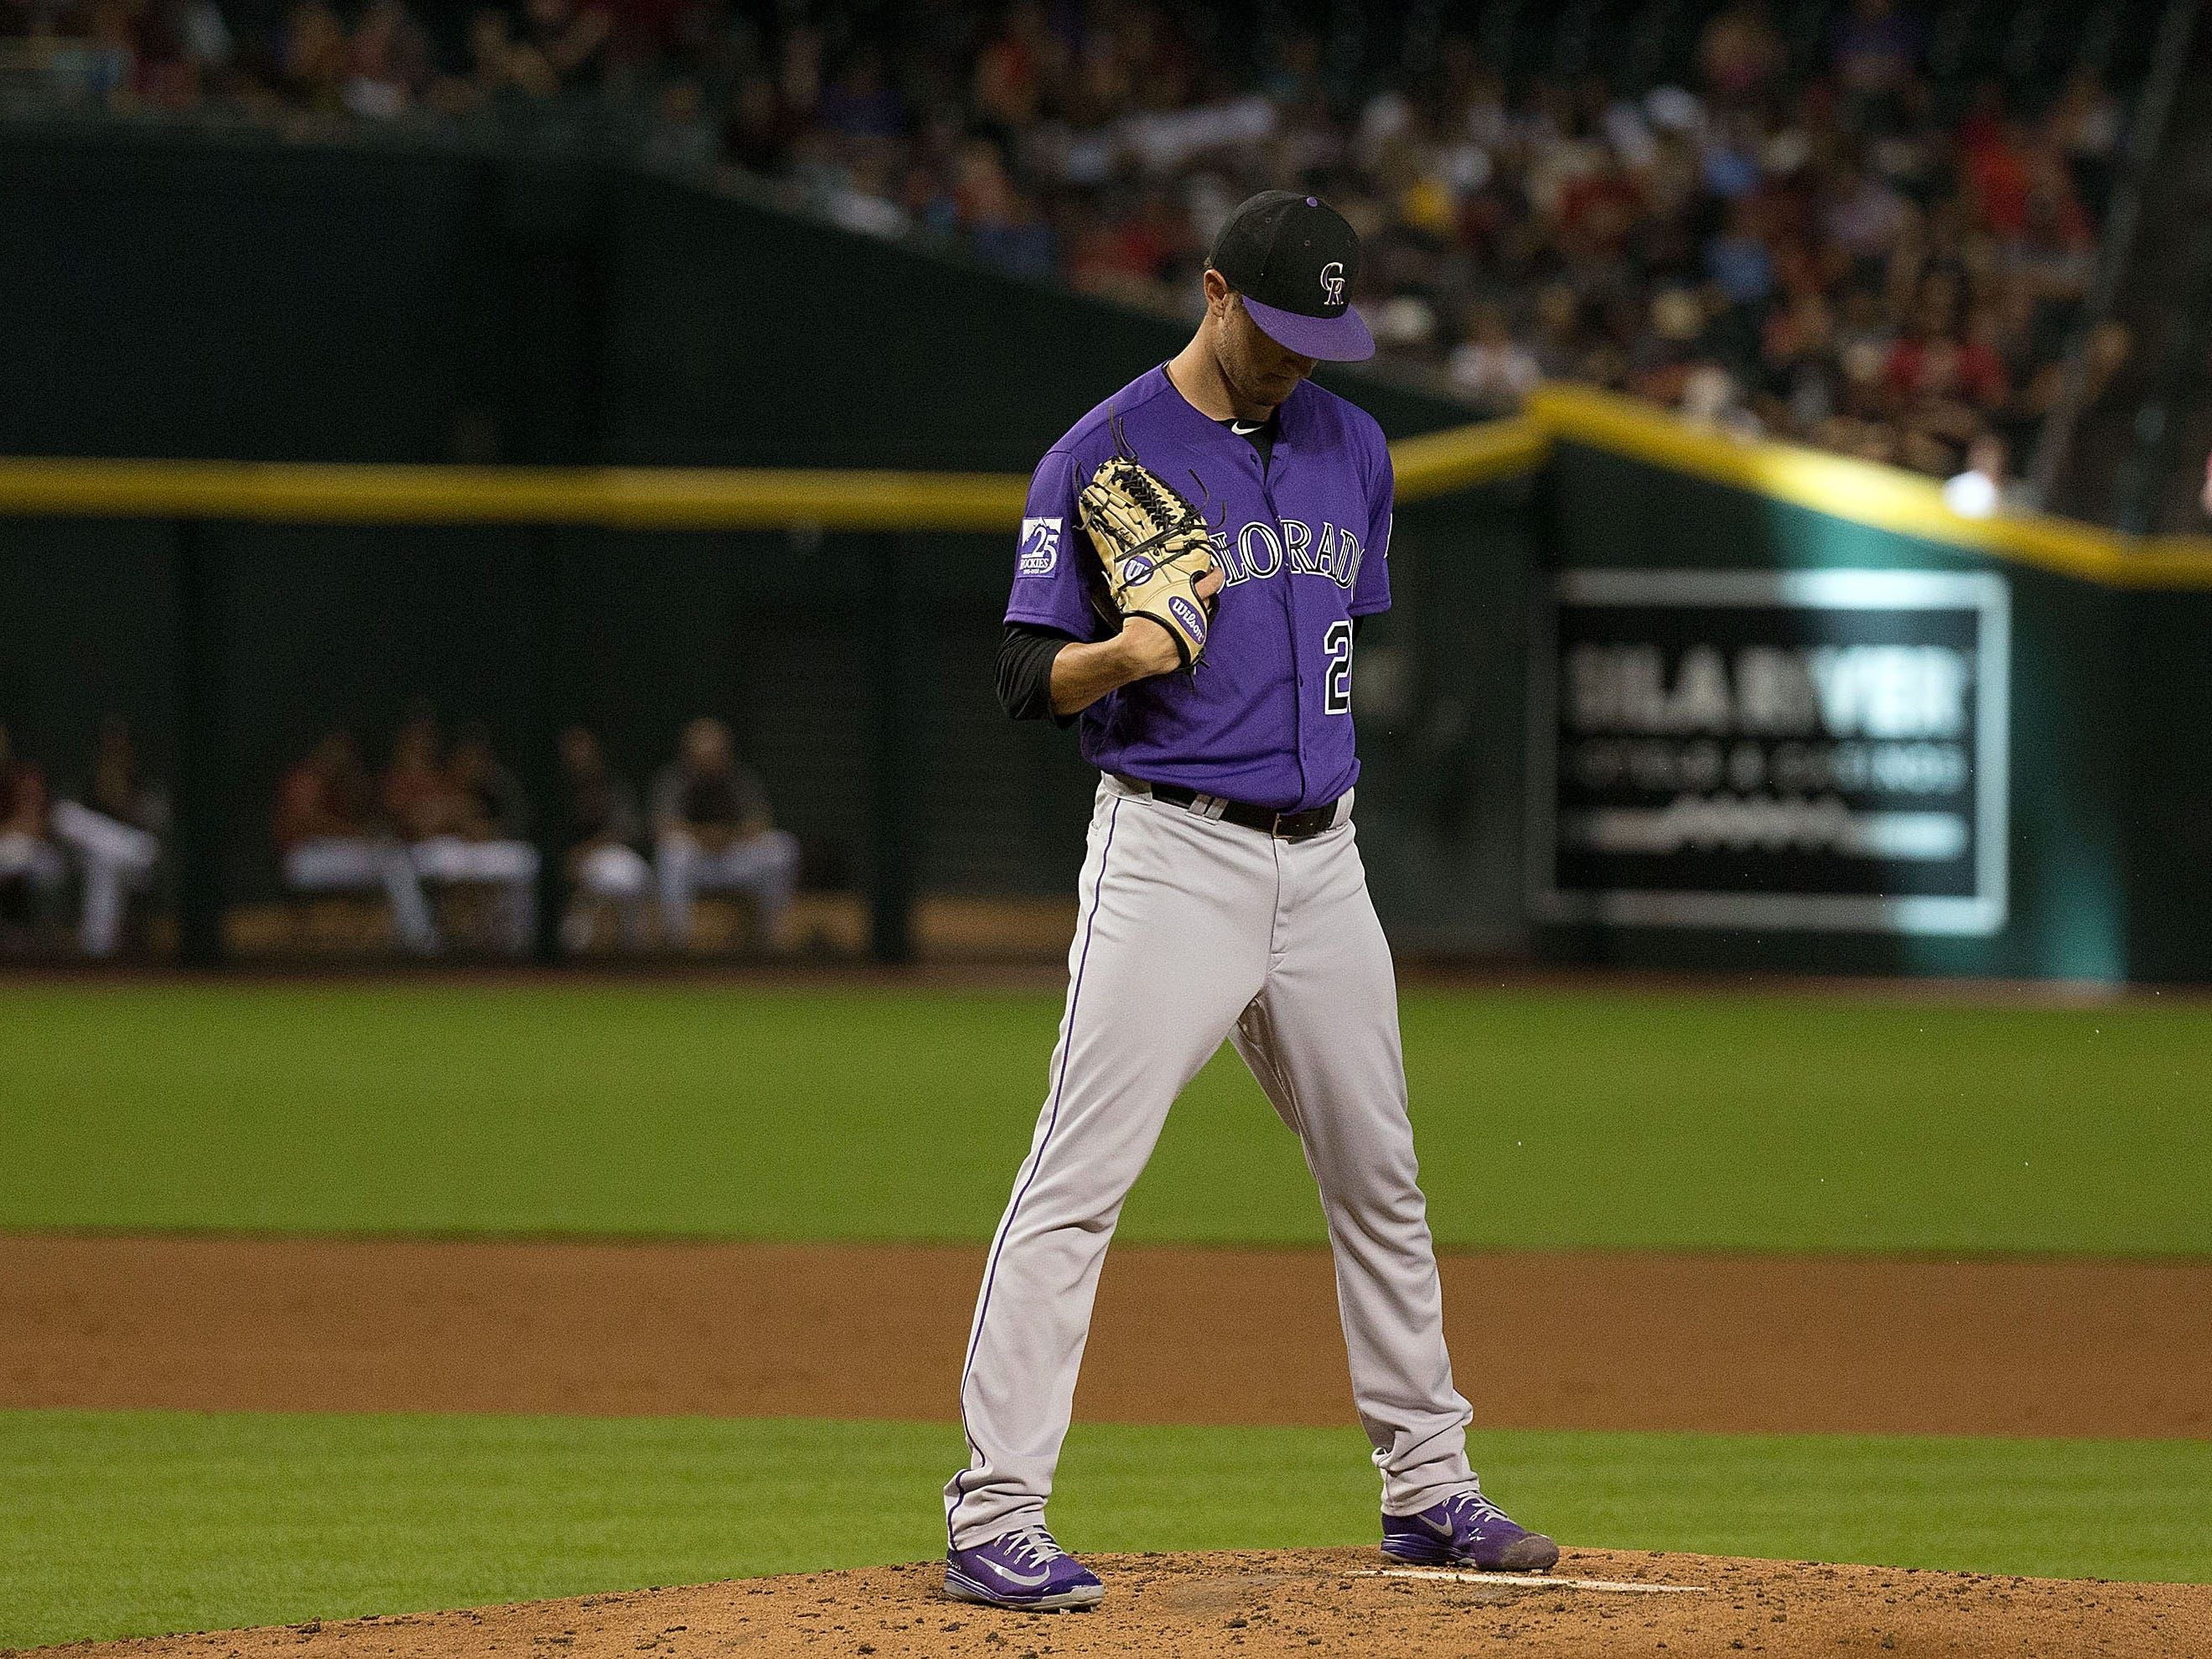 Sep 23, 2018; Phoenix, AZ, USA; Colorado Rockies pitcher Kyle Freeland (21) on the mound during the second inning against the Arizona Diamondbacks at Chase Field. 